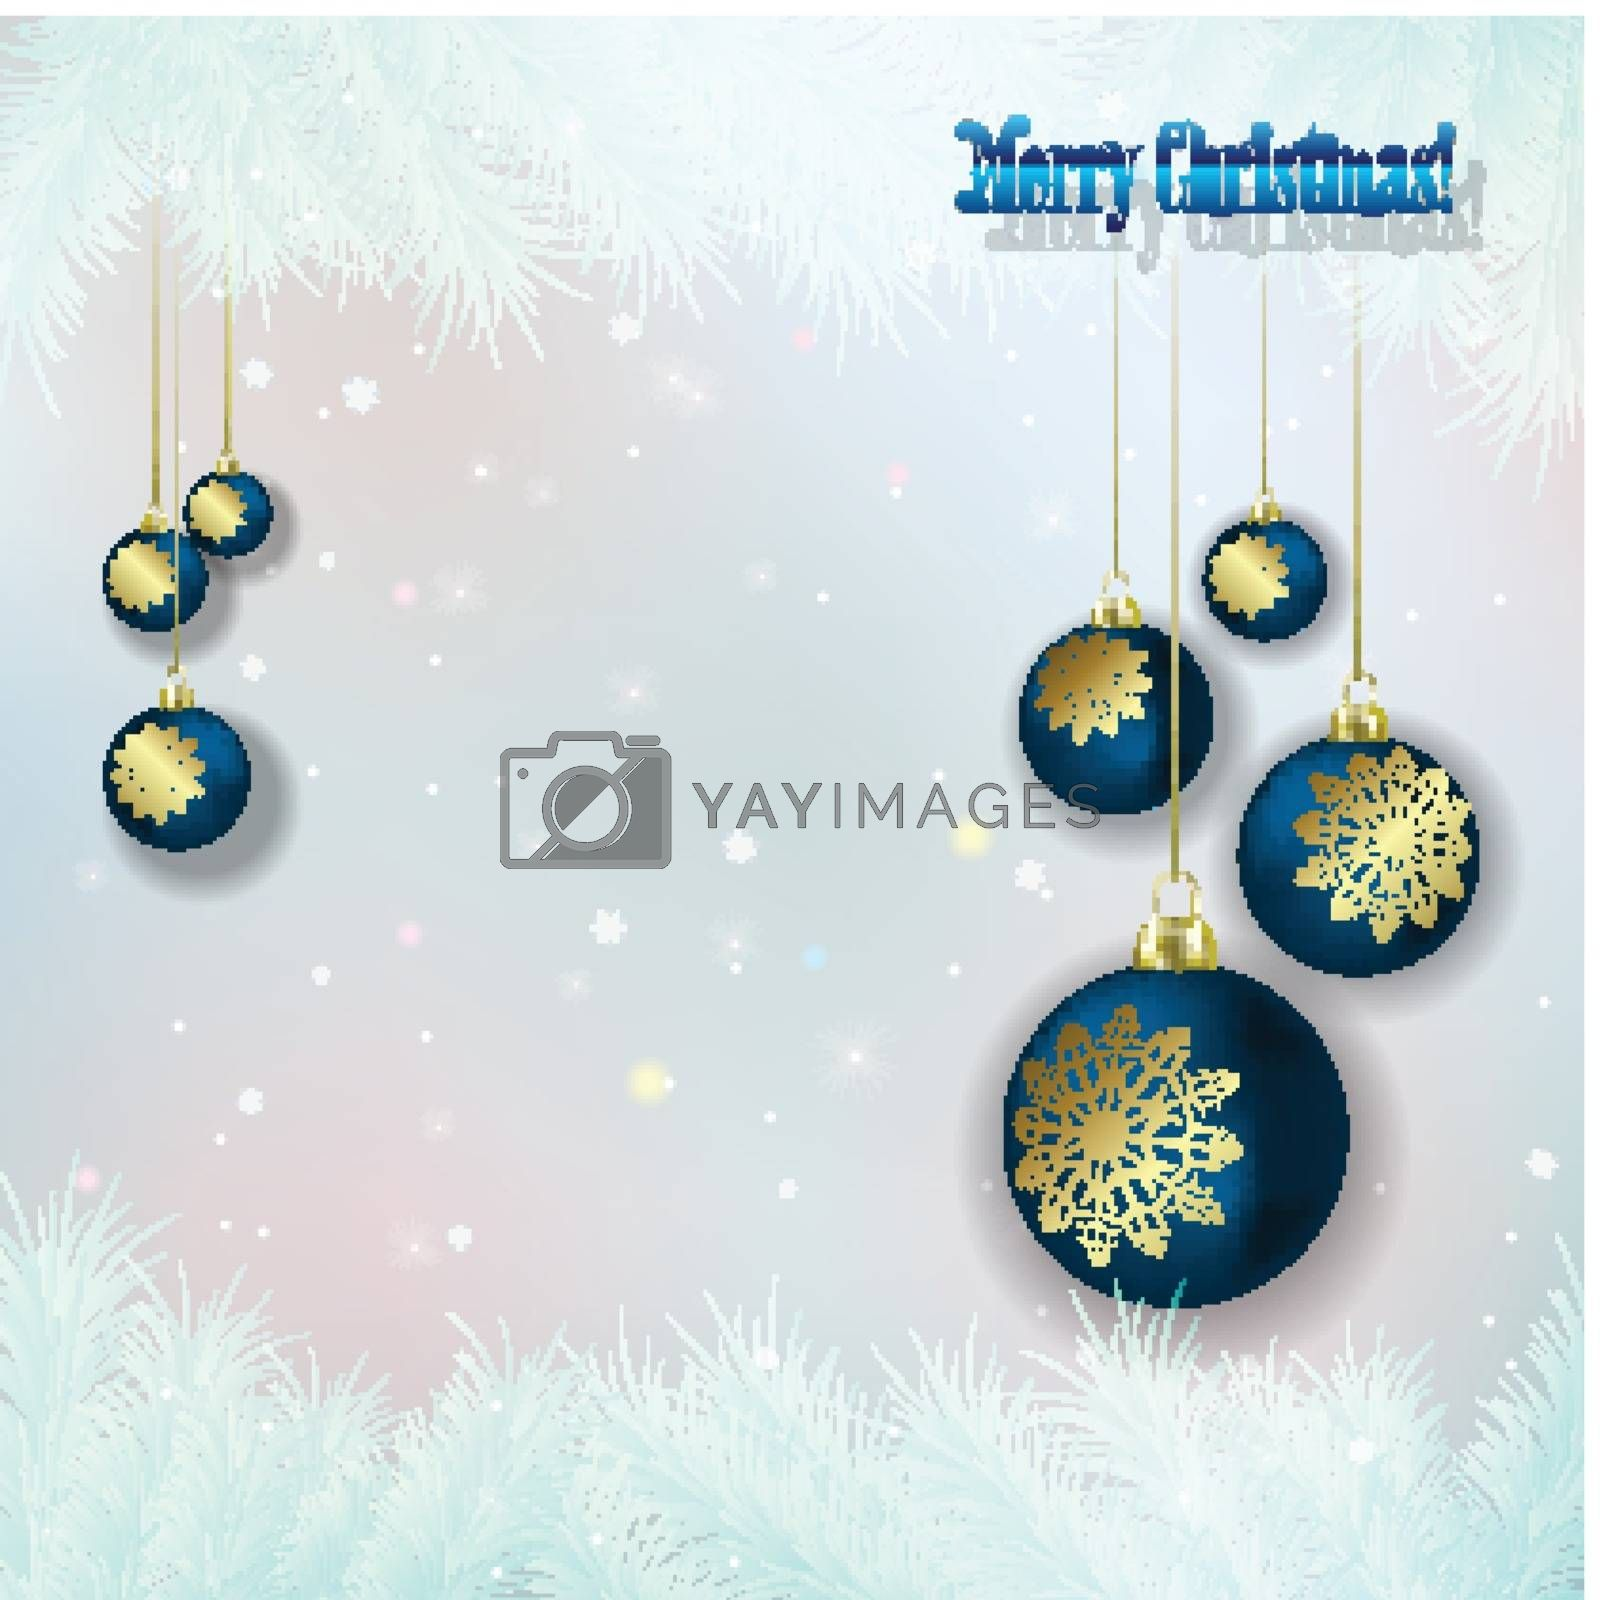 Royalty free image of Abstract background with Christmas decorations by lem